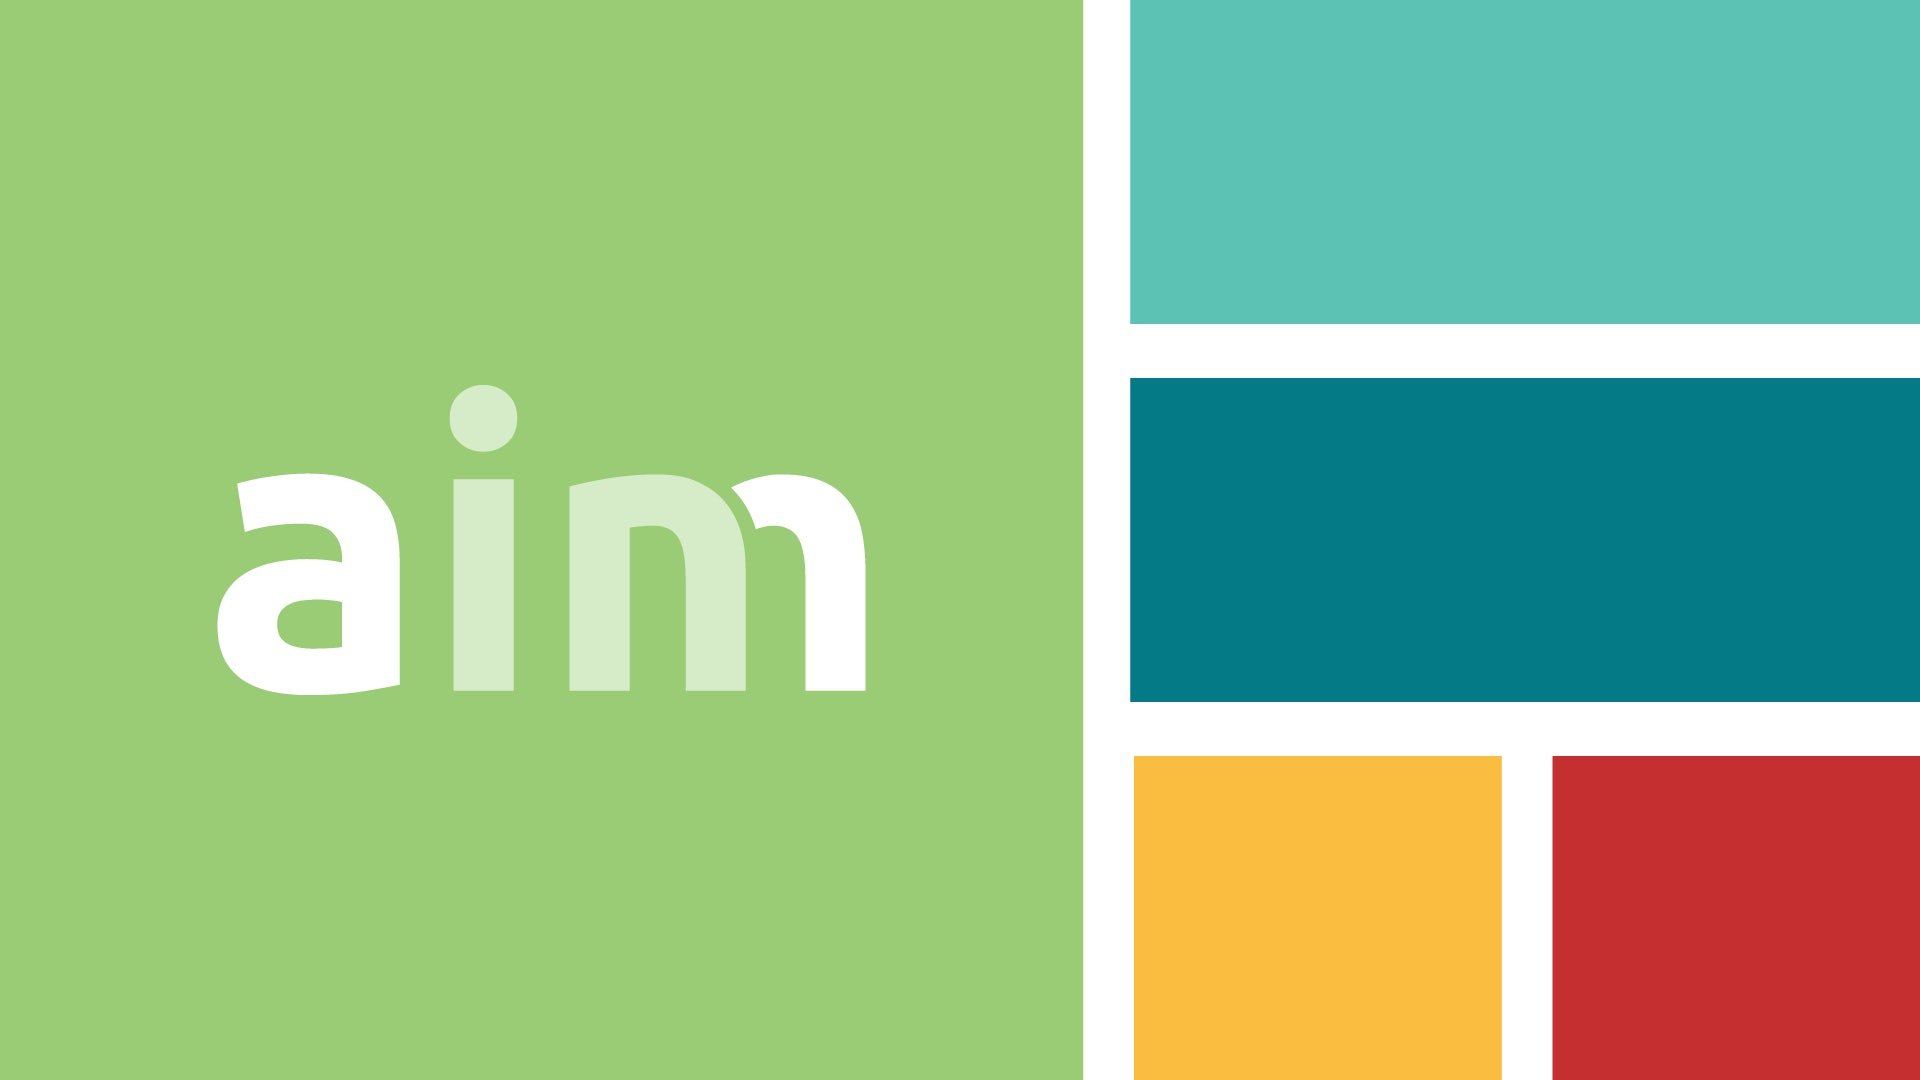 aim: indiana color palette